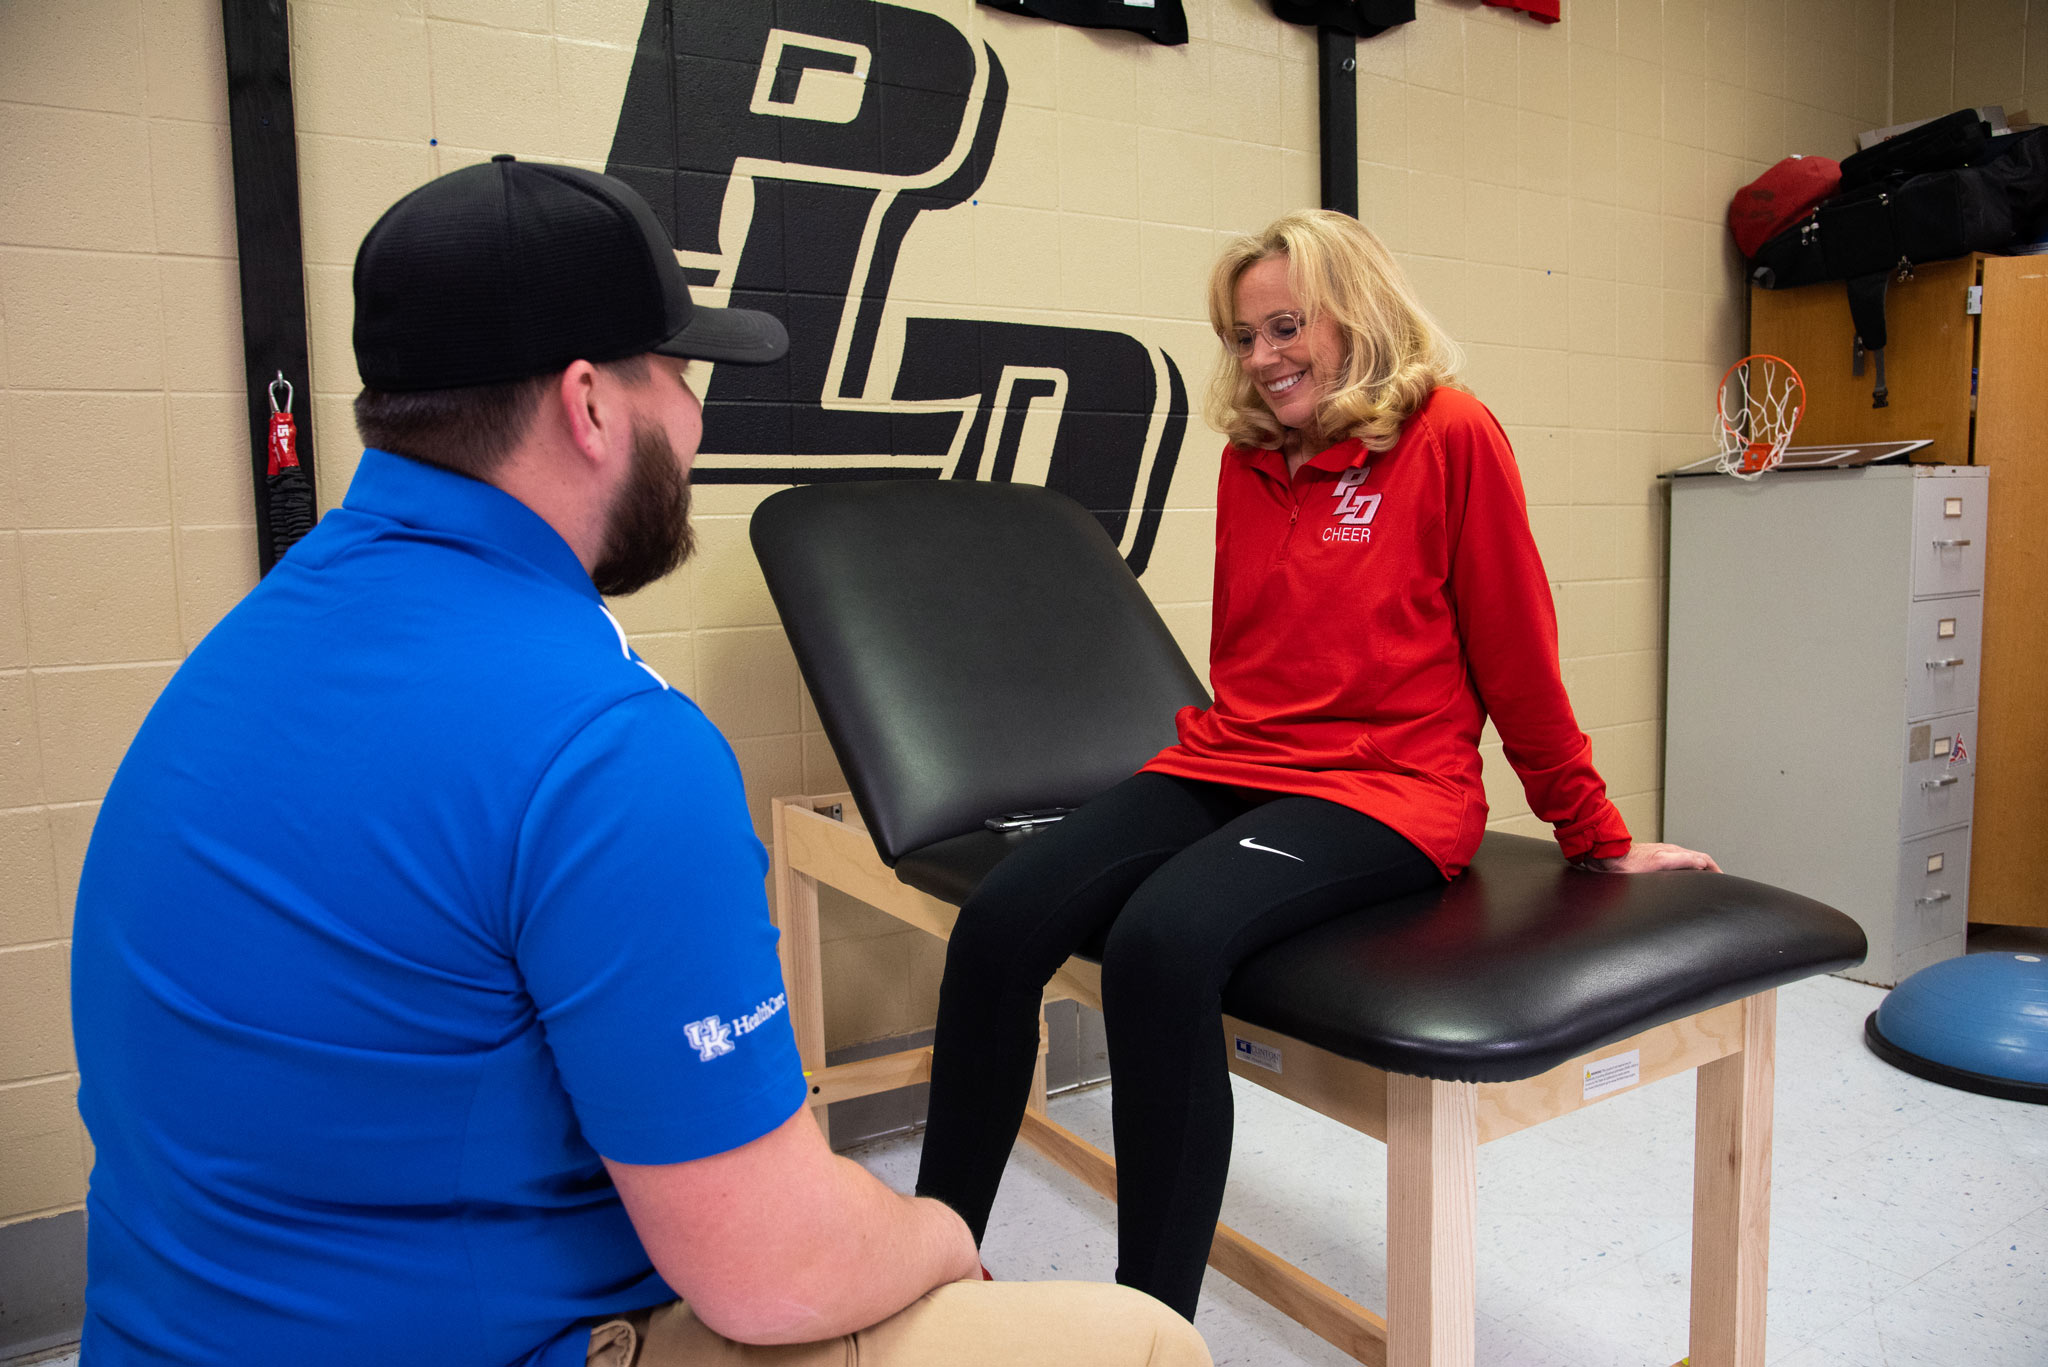 Donna sits on a patient's bench while her physical therapist talks to her about her knee.